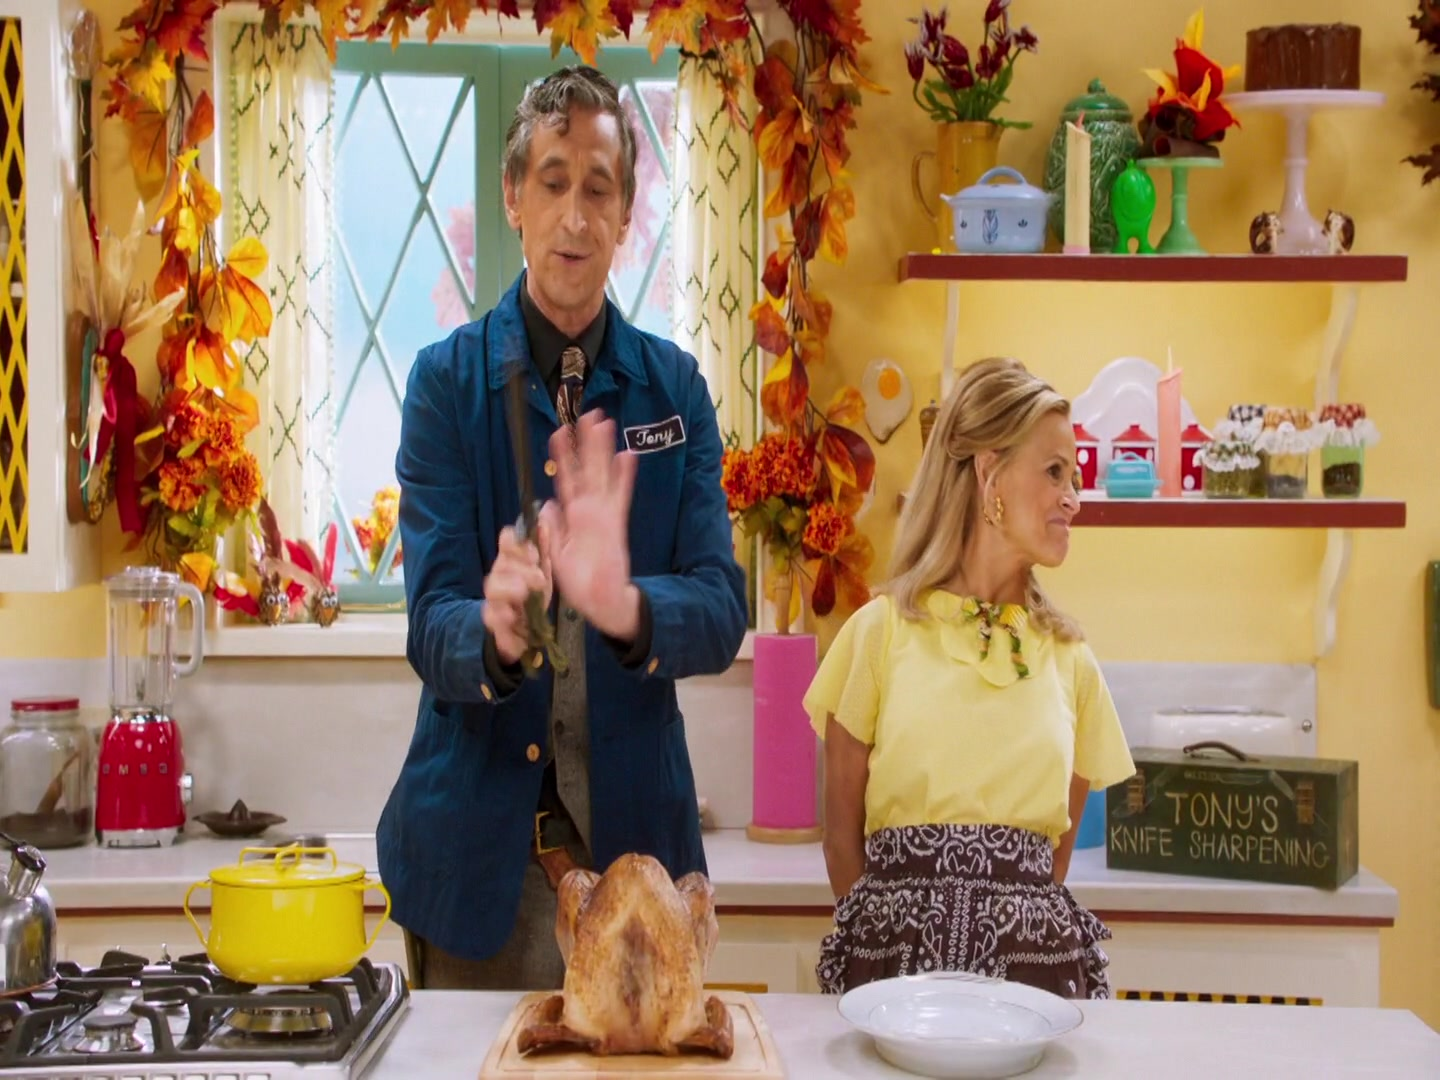 At Home with Amy Sedaris S02E08